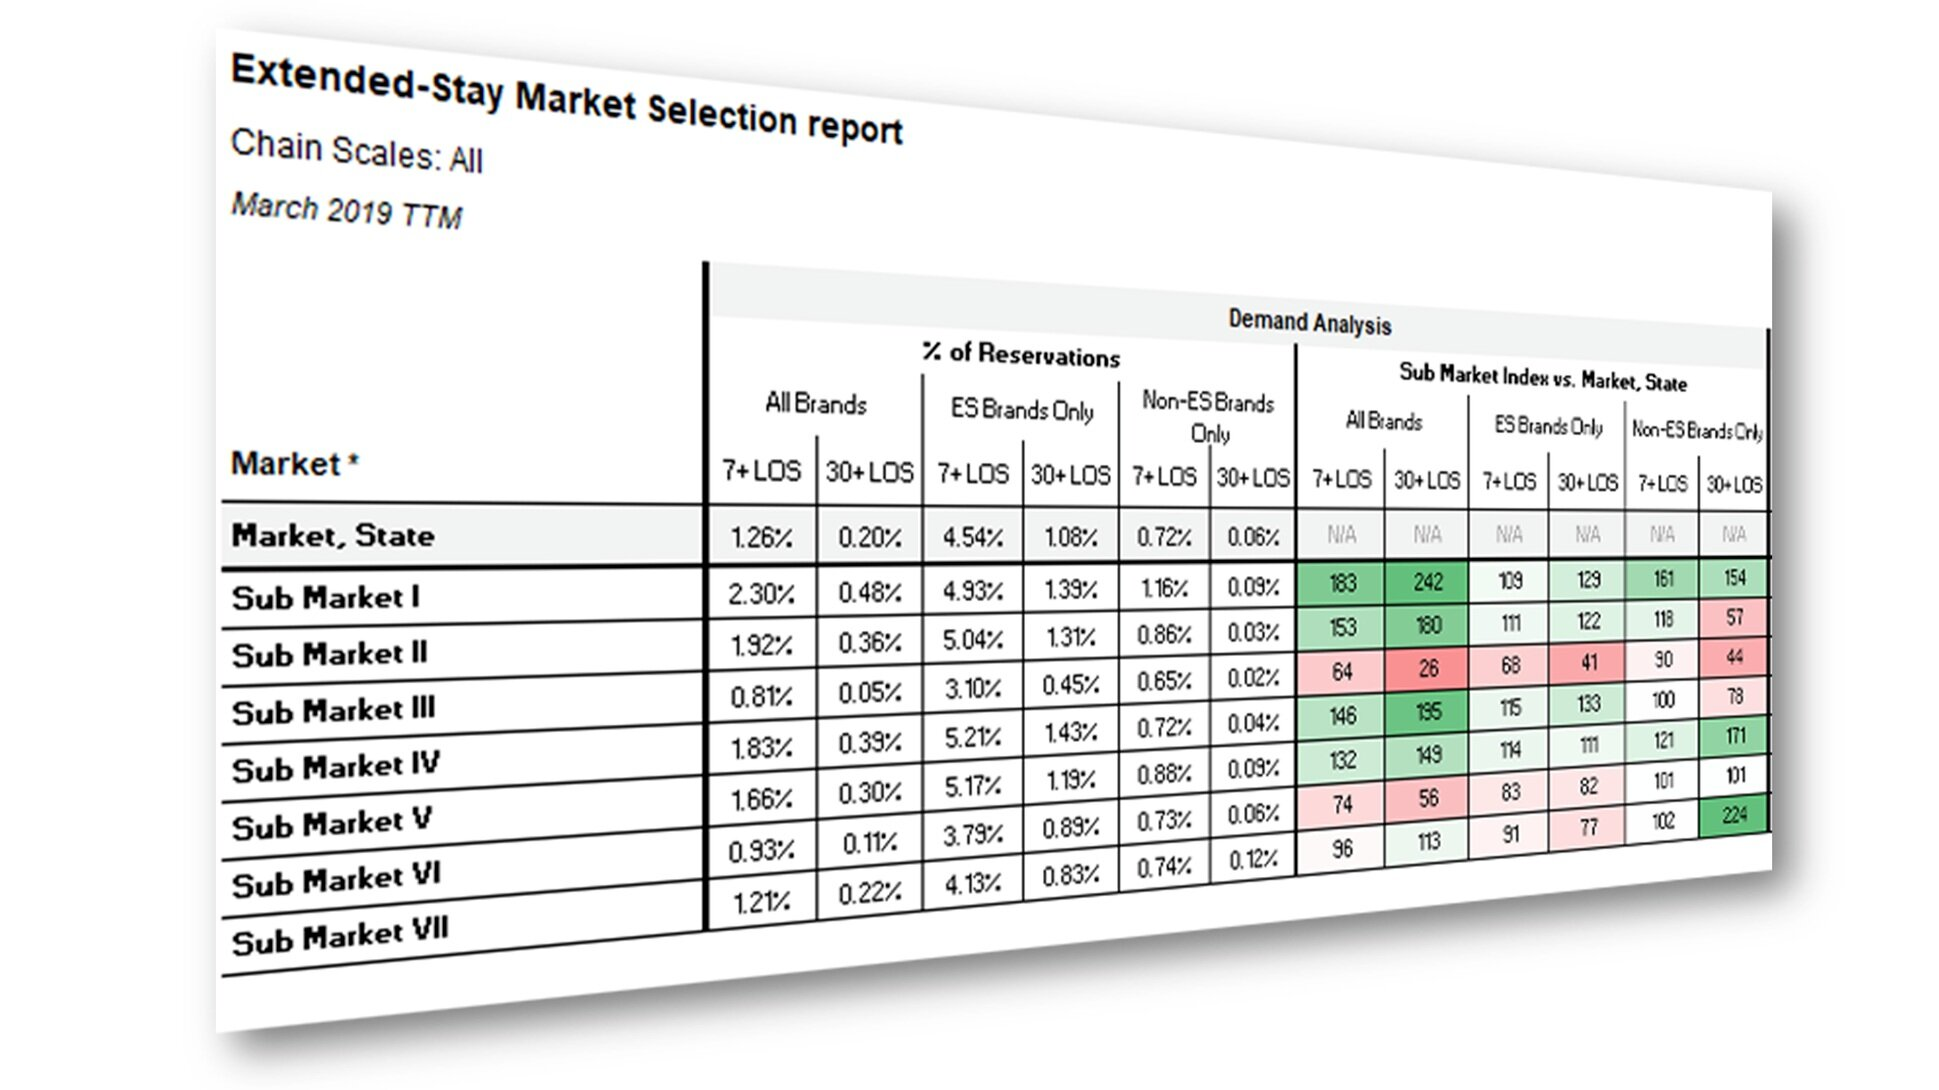 The demand analysis profiles 7+ LOS and 30+ LOS reservations broken out by extended-stay and non-extended stay brands to show how much LOS demand exists and which type of hotels are receiving these bookings. -